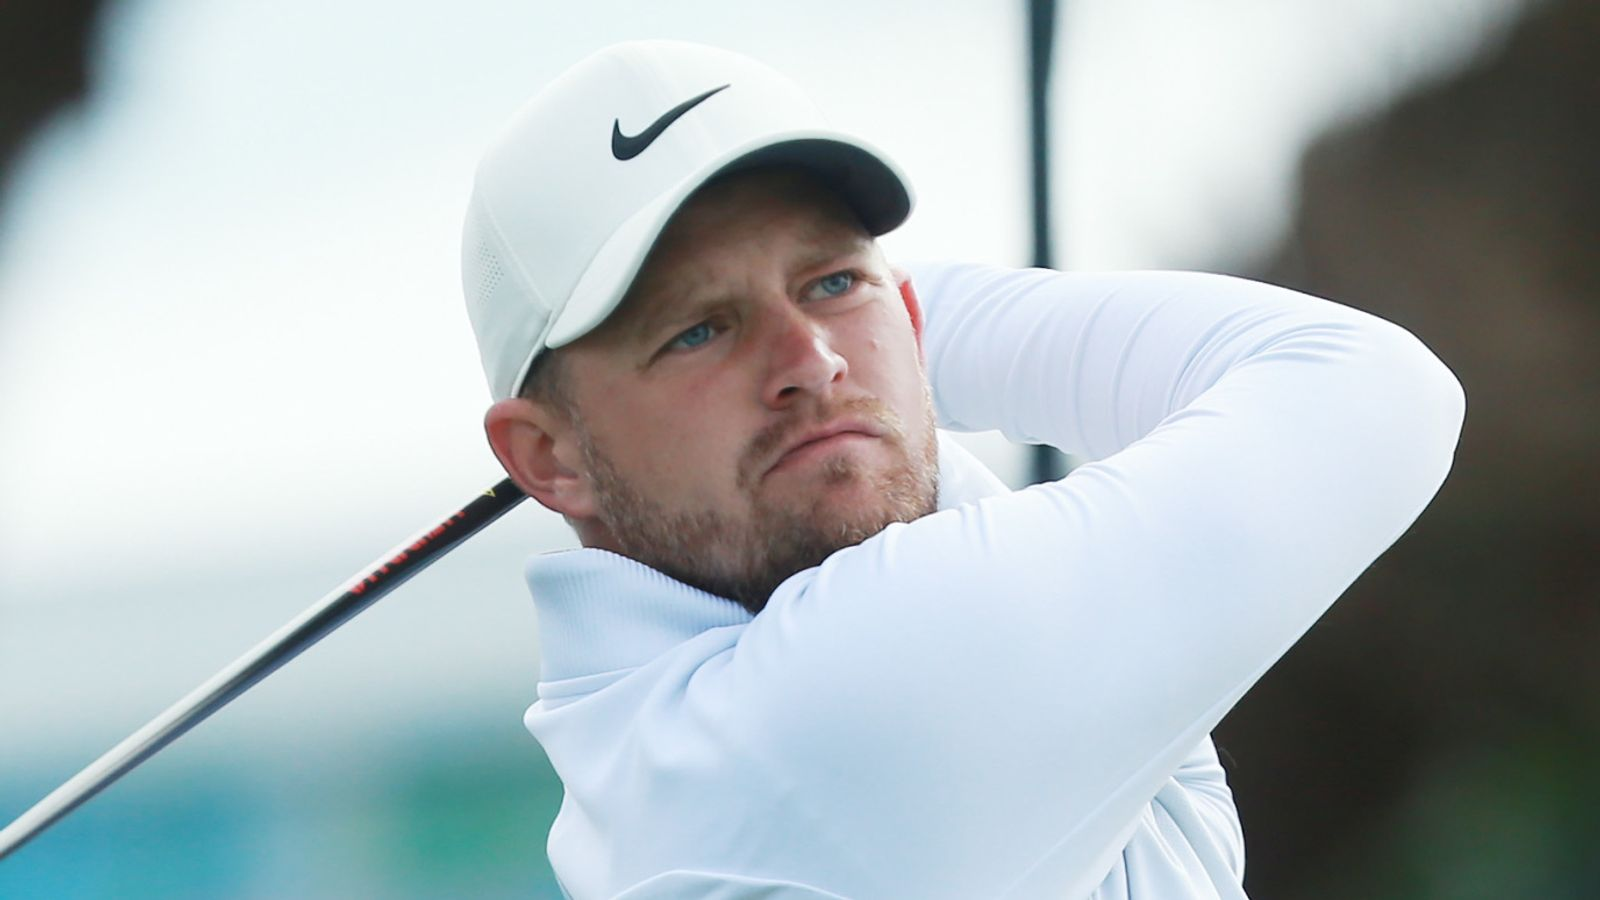 Honda Classic: Tom Lewis leads, Lee Westwood one back at PGA National